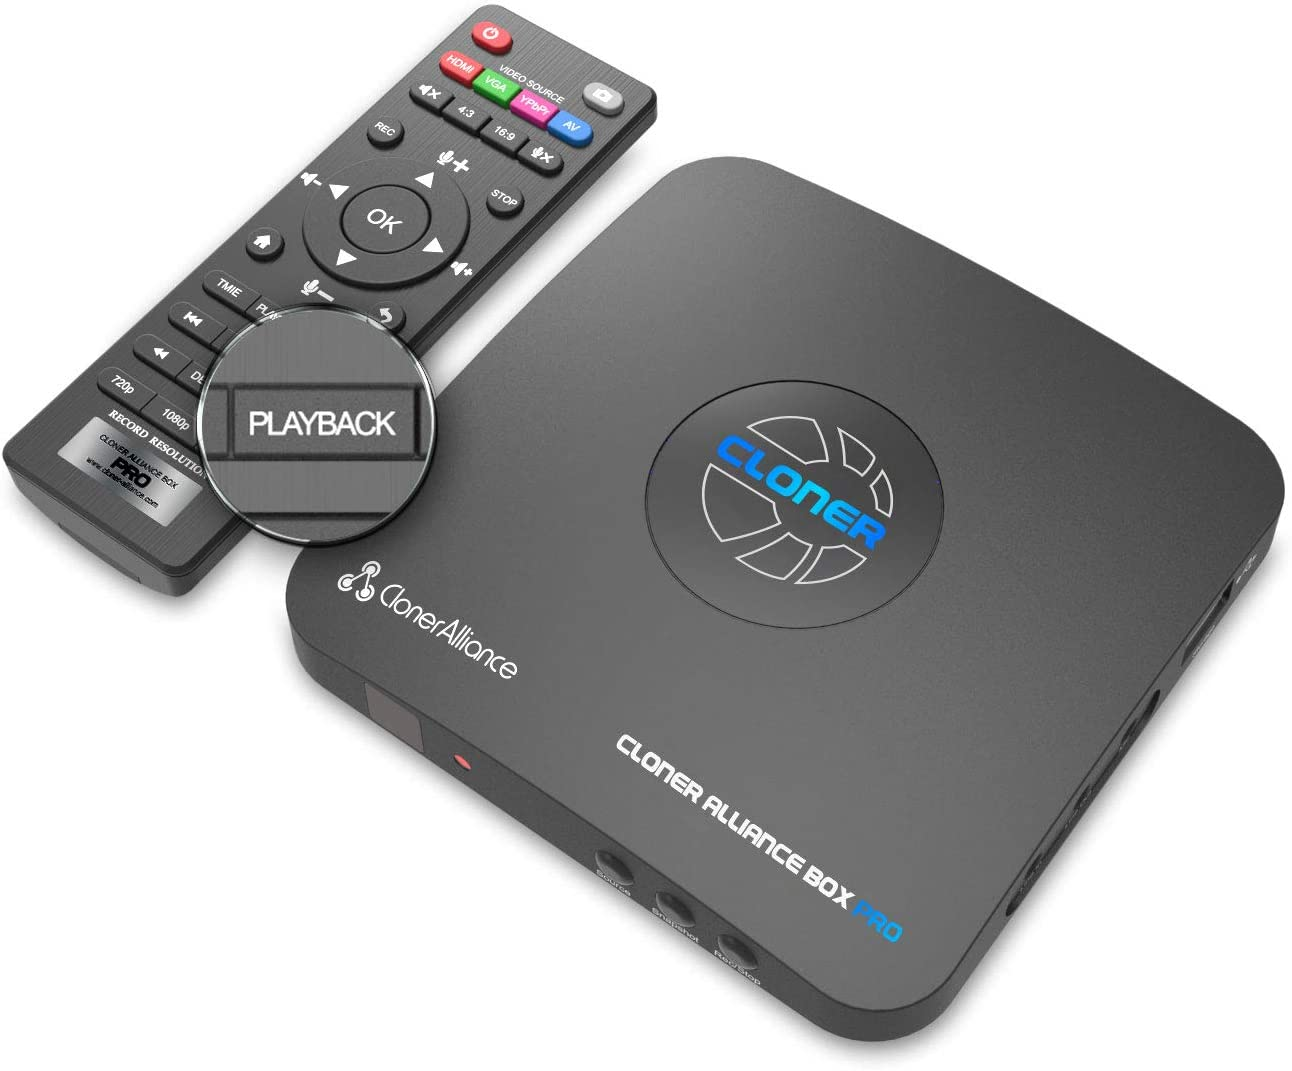 HDML-Cloner Box Pro, Capture 1080p HDMI Videos/Games and Play Back Instantly with The Remote Control, Schedule Recording, HDMI/VGA/AV/YPbPr Input. No PC Required. : Camera & Photo